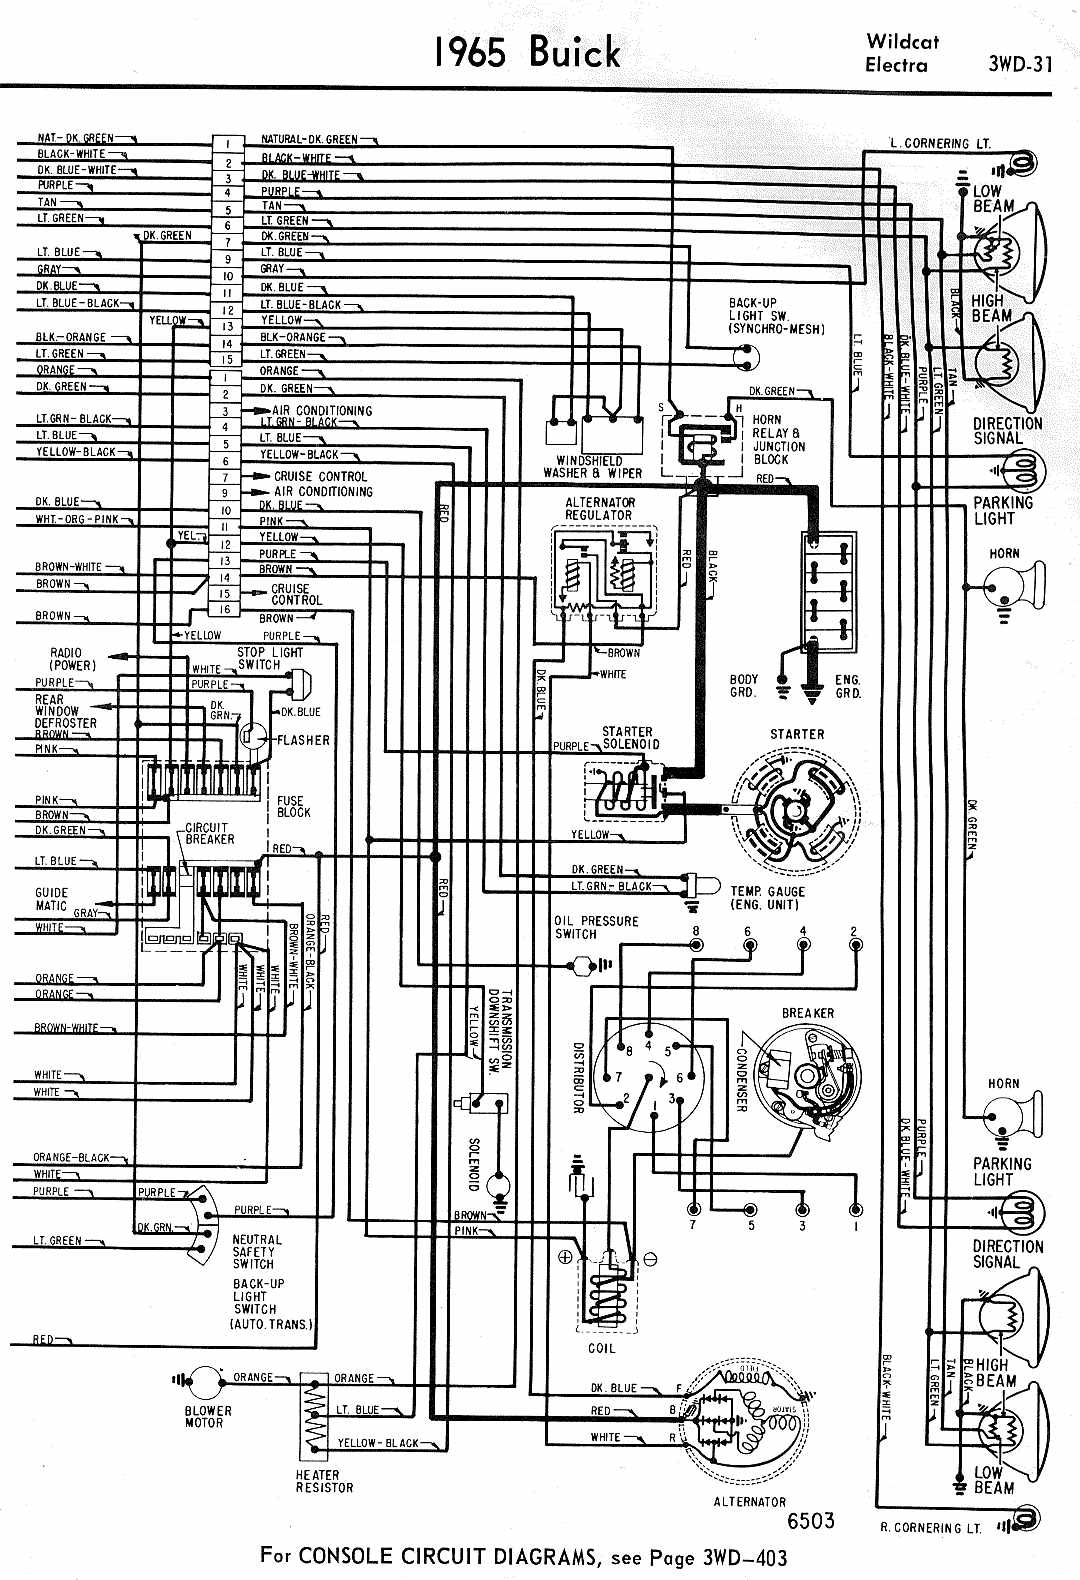 Buick Car Manuals Wiring Diagrams Pdf Fault Codes 2008 Ford Focus Engine Diagram Download